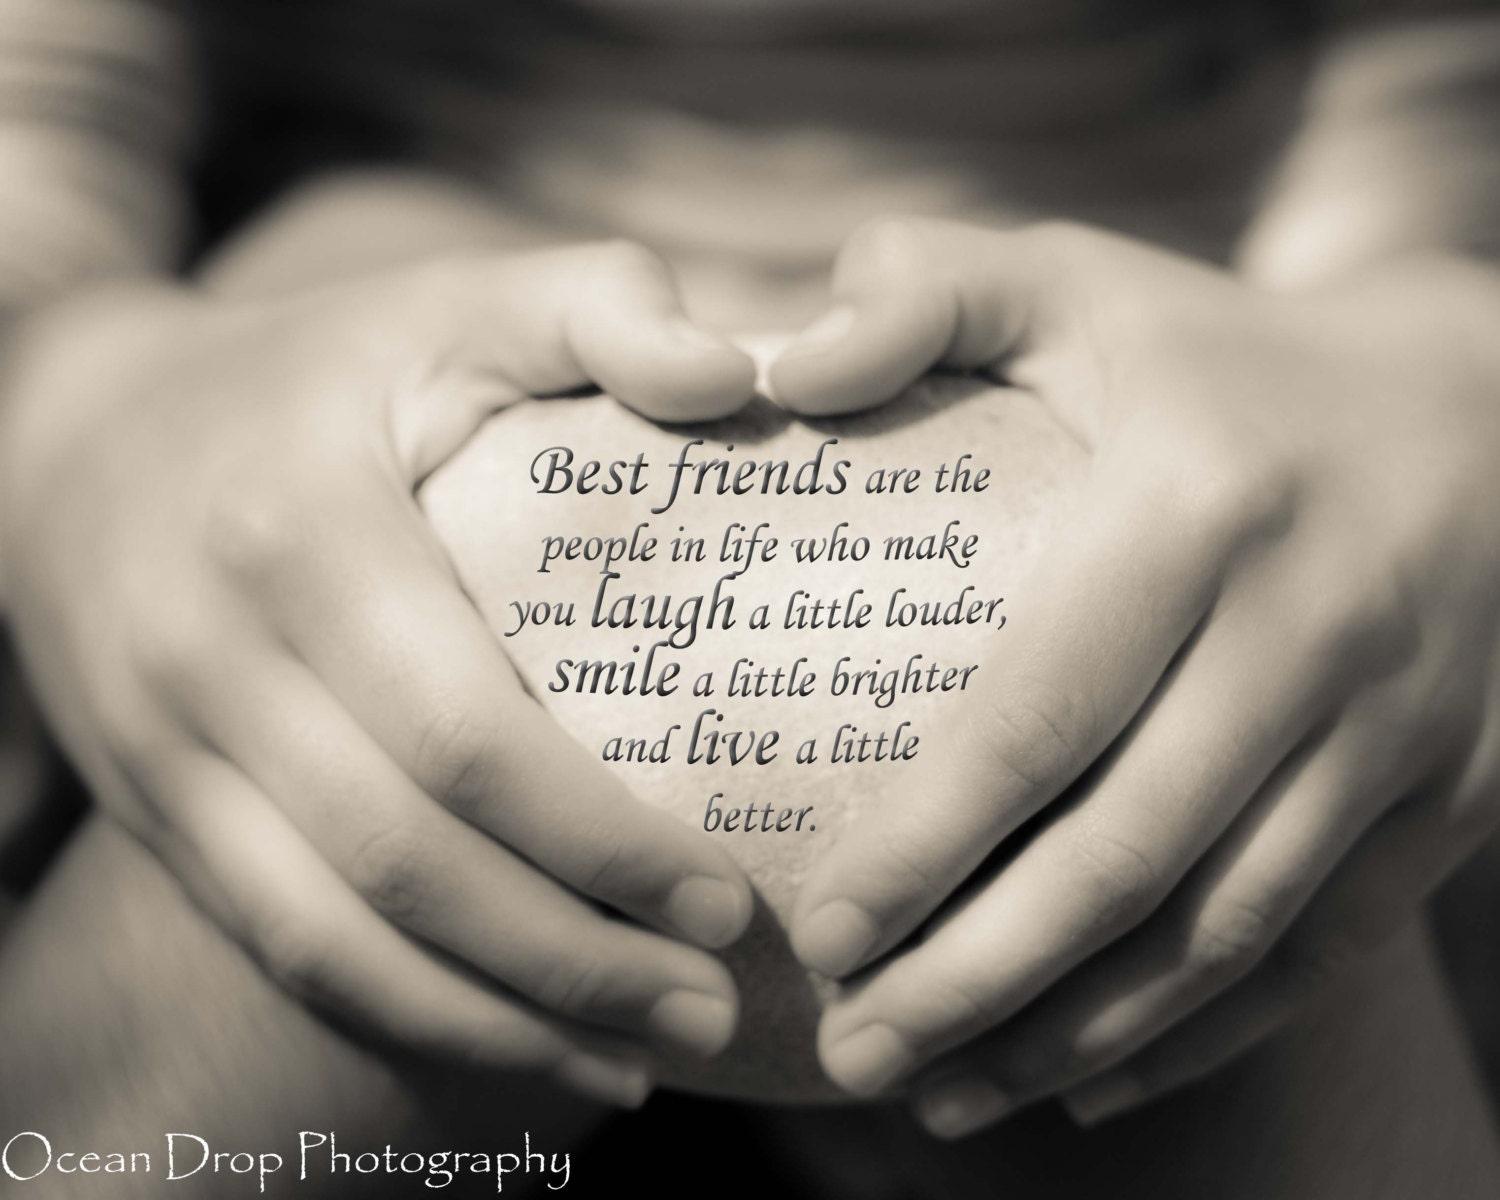 Quotes About Female Friendship Friendship Quotes For A Male Love Between Man And Woman Quotes